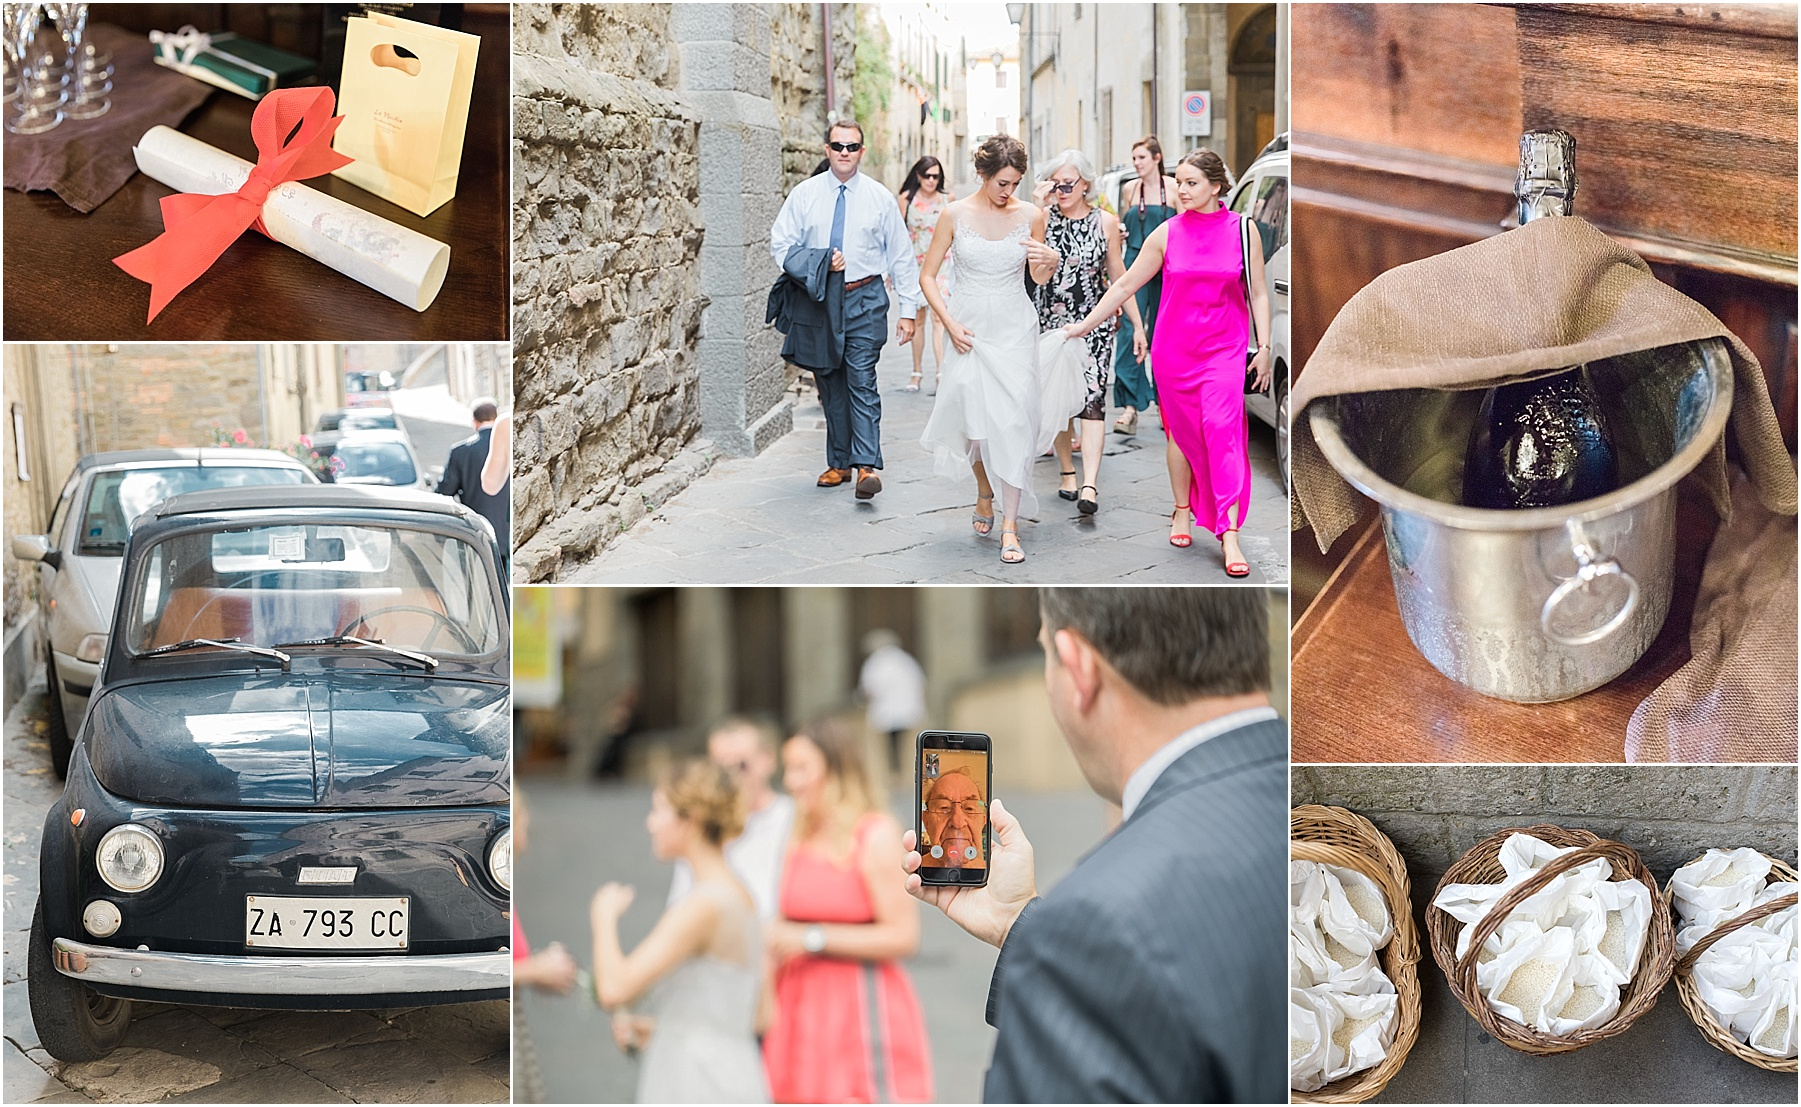 destination wedding italy tuscany cortona walking to the ceremony fiat ceremony details risotto to throw